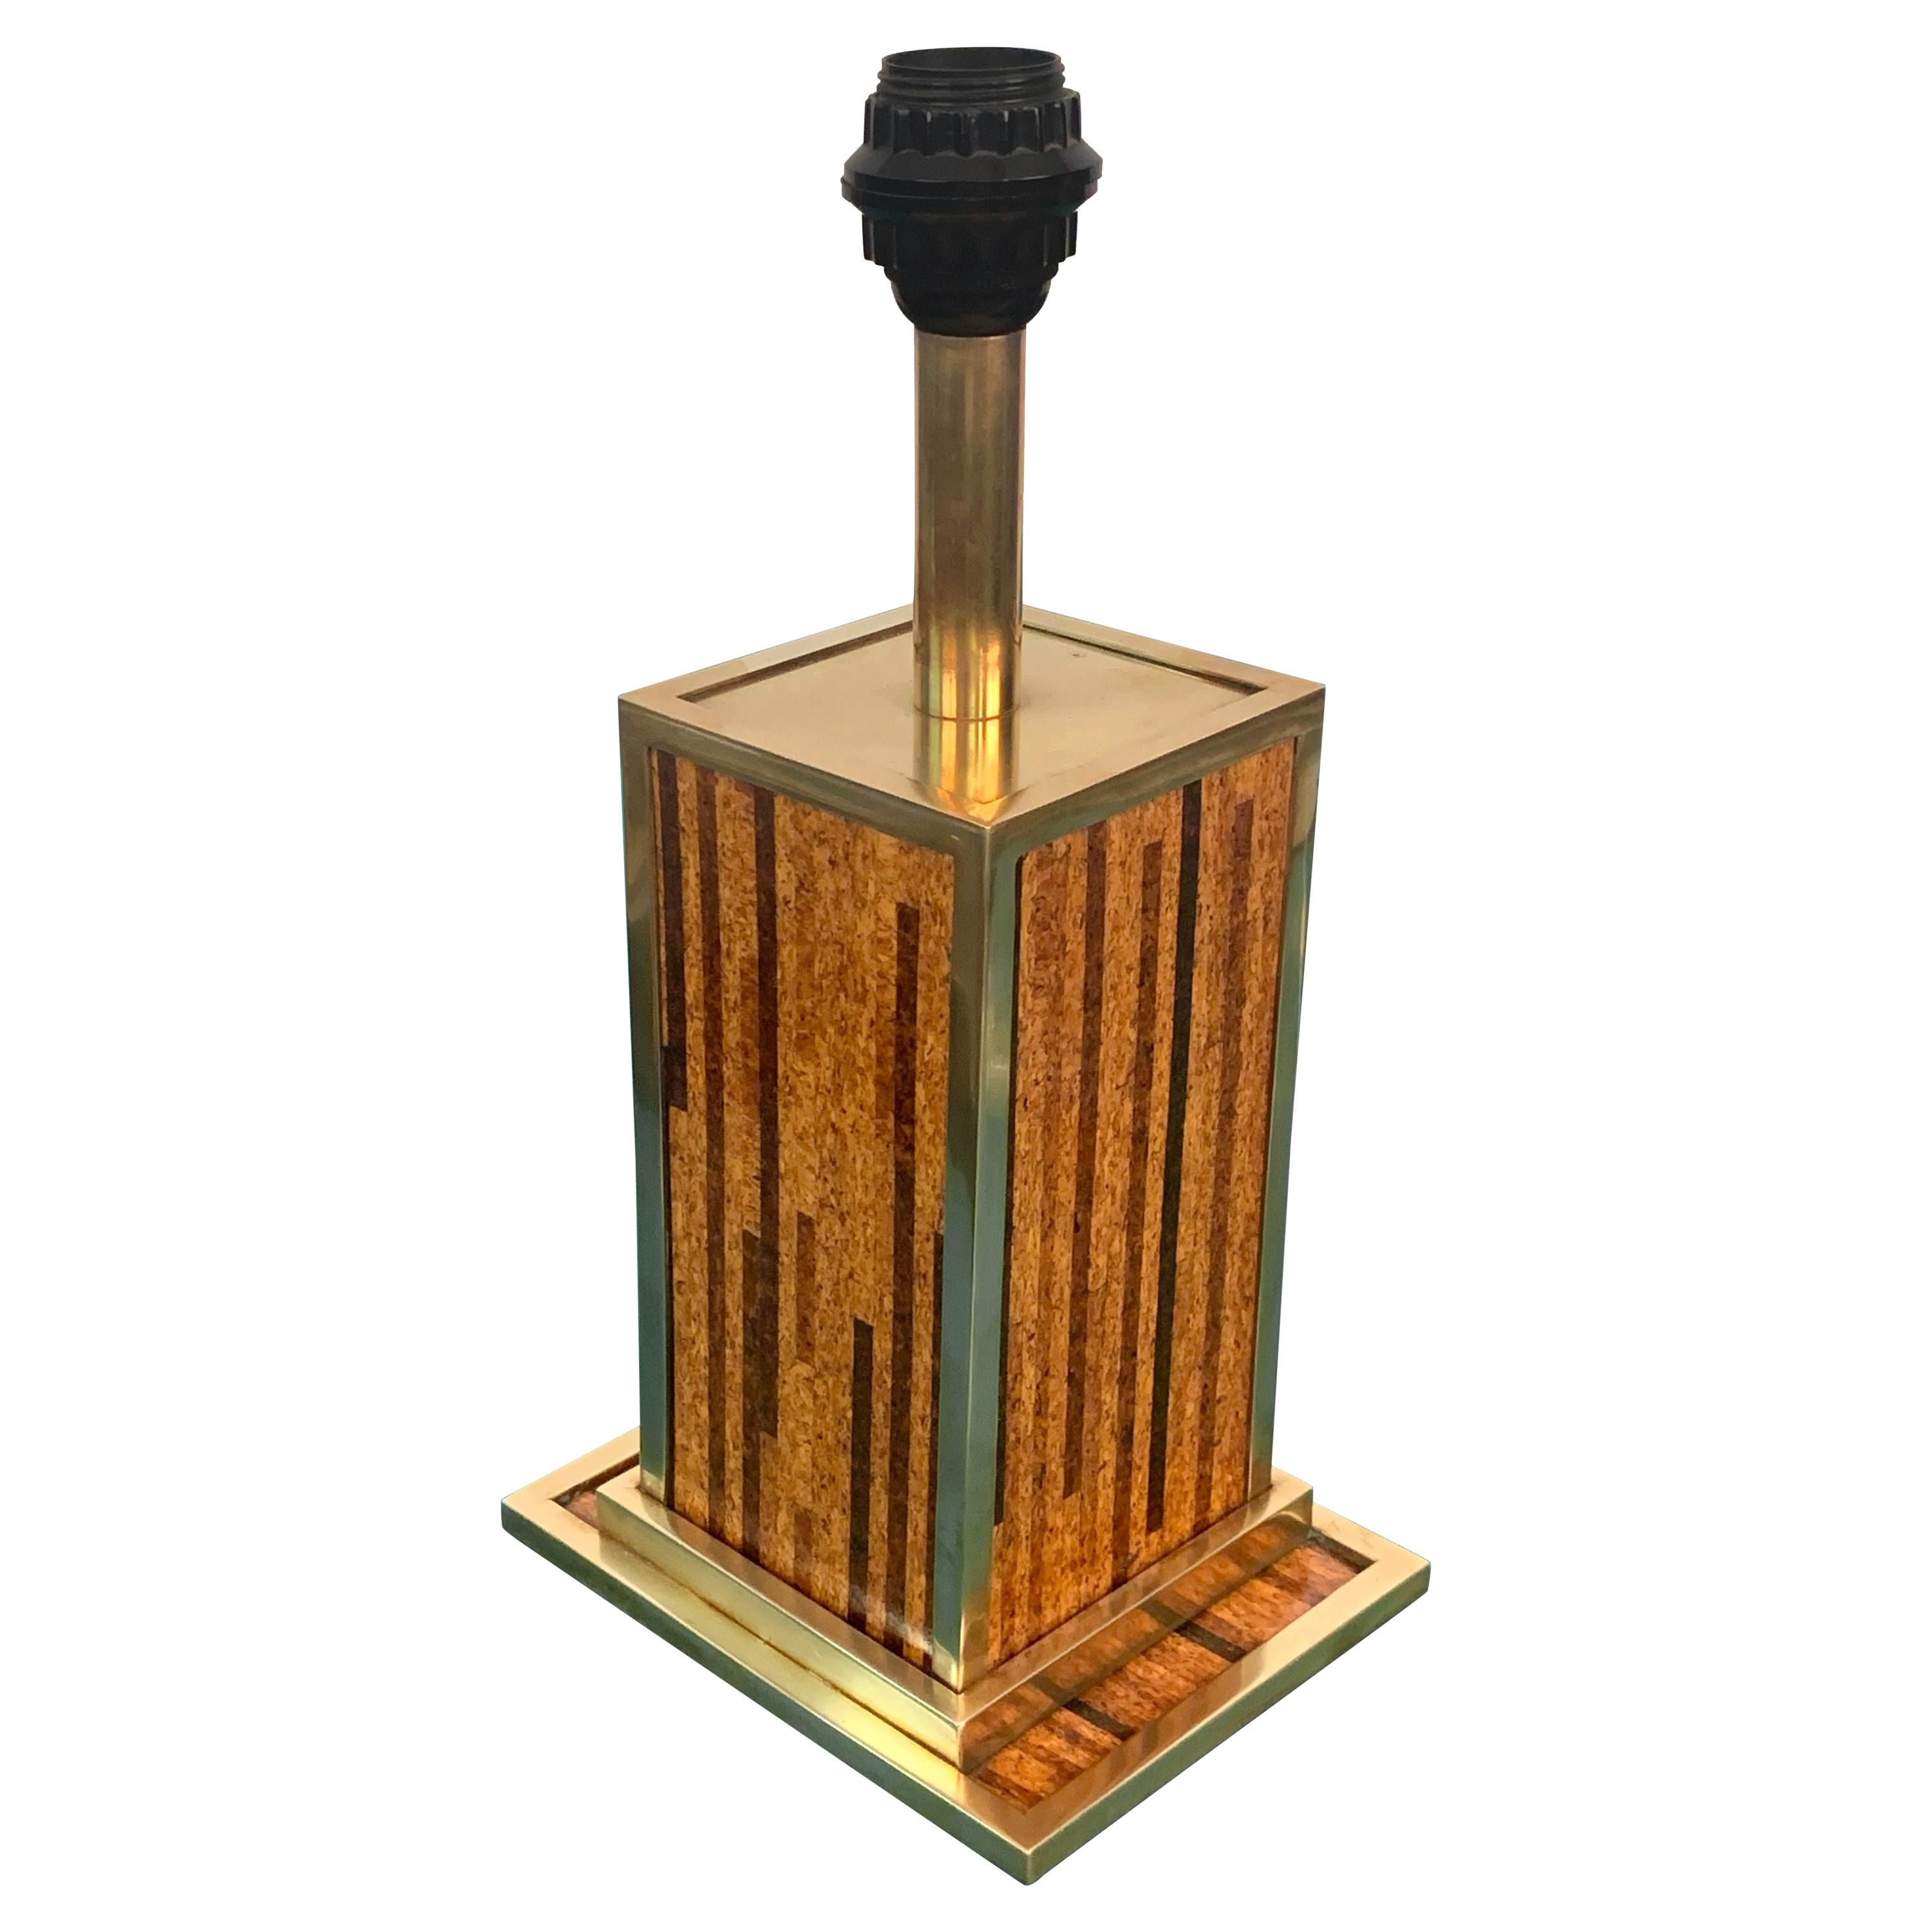 Midcentury Willy Rizzo Style Brass and Cork Table Lamp, 1970s